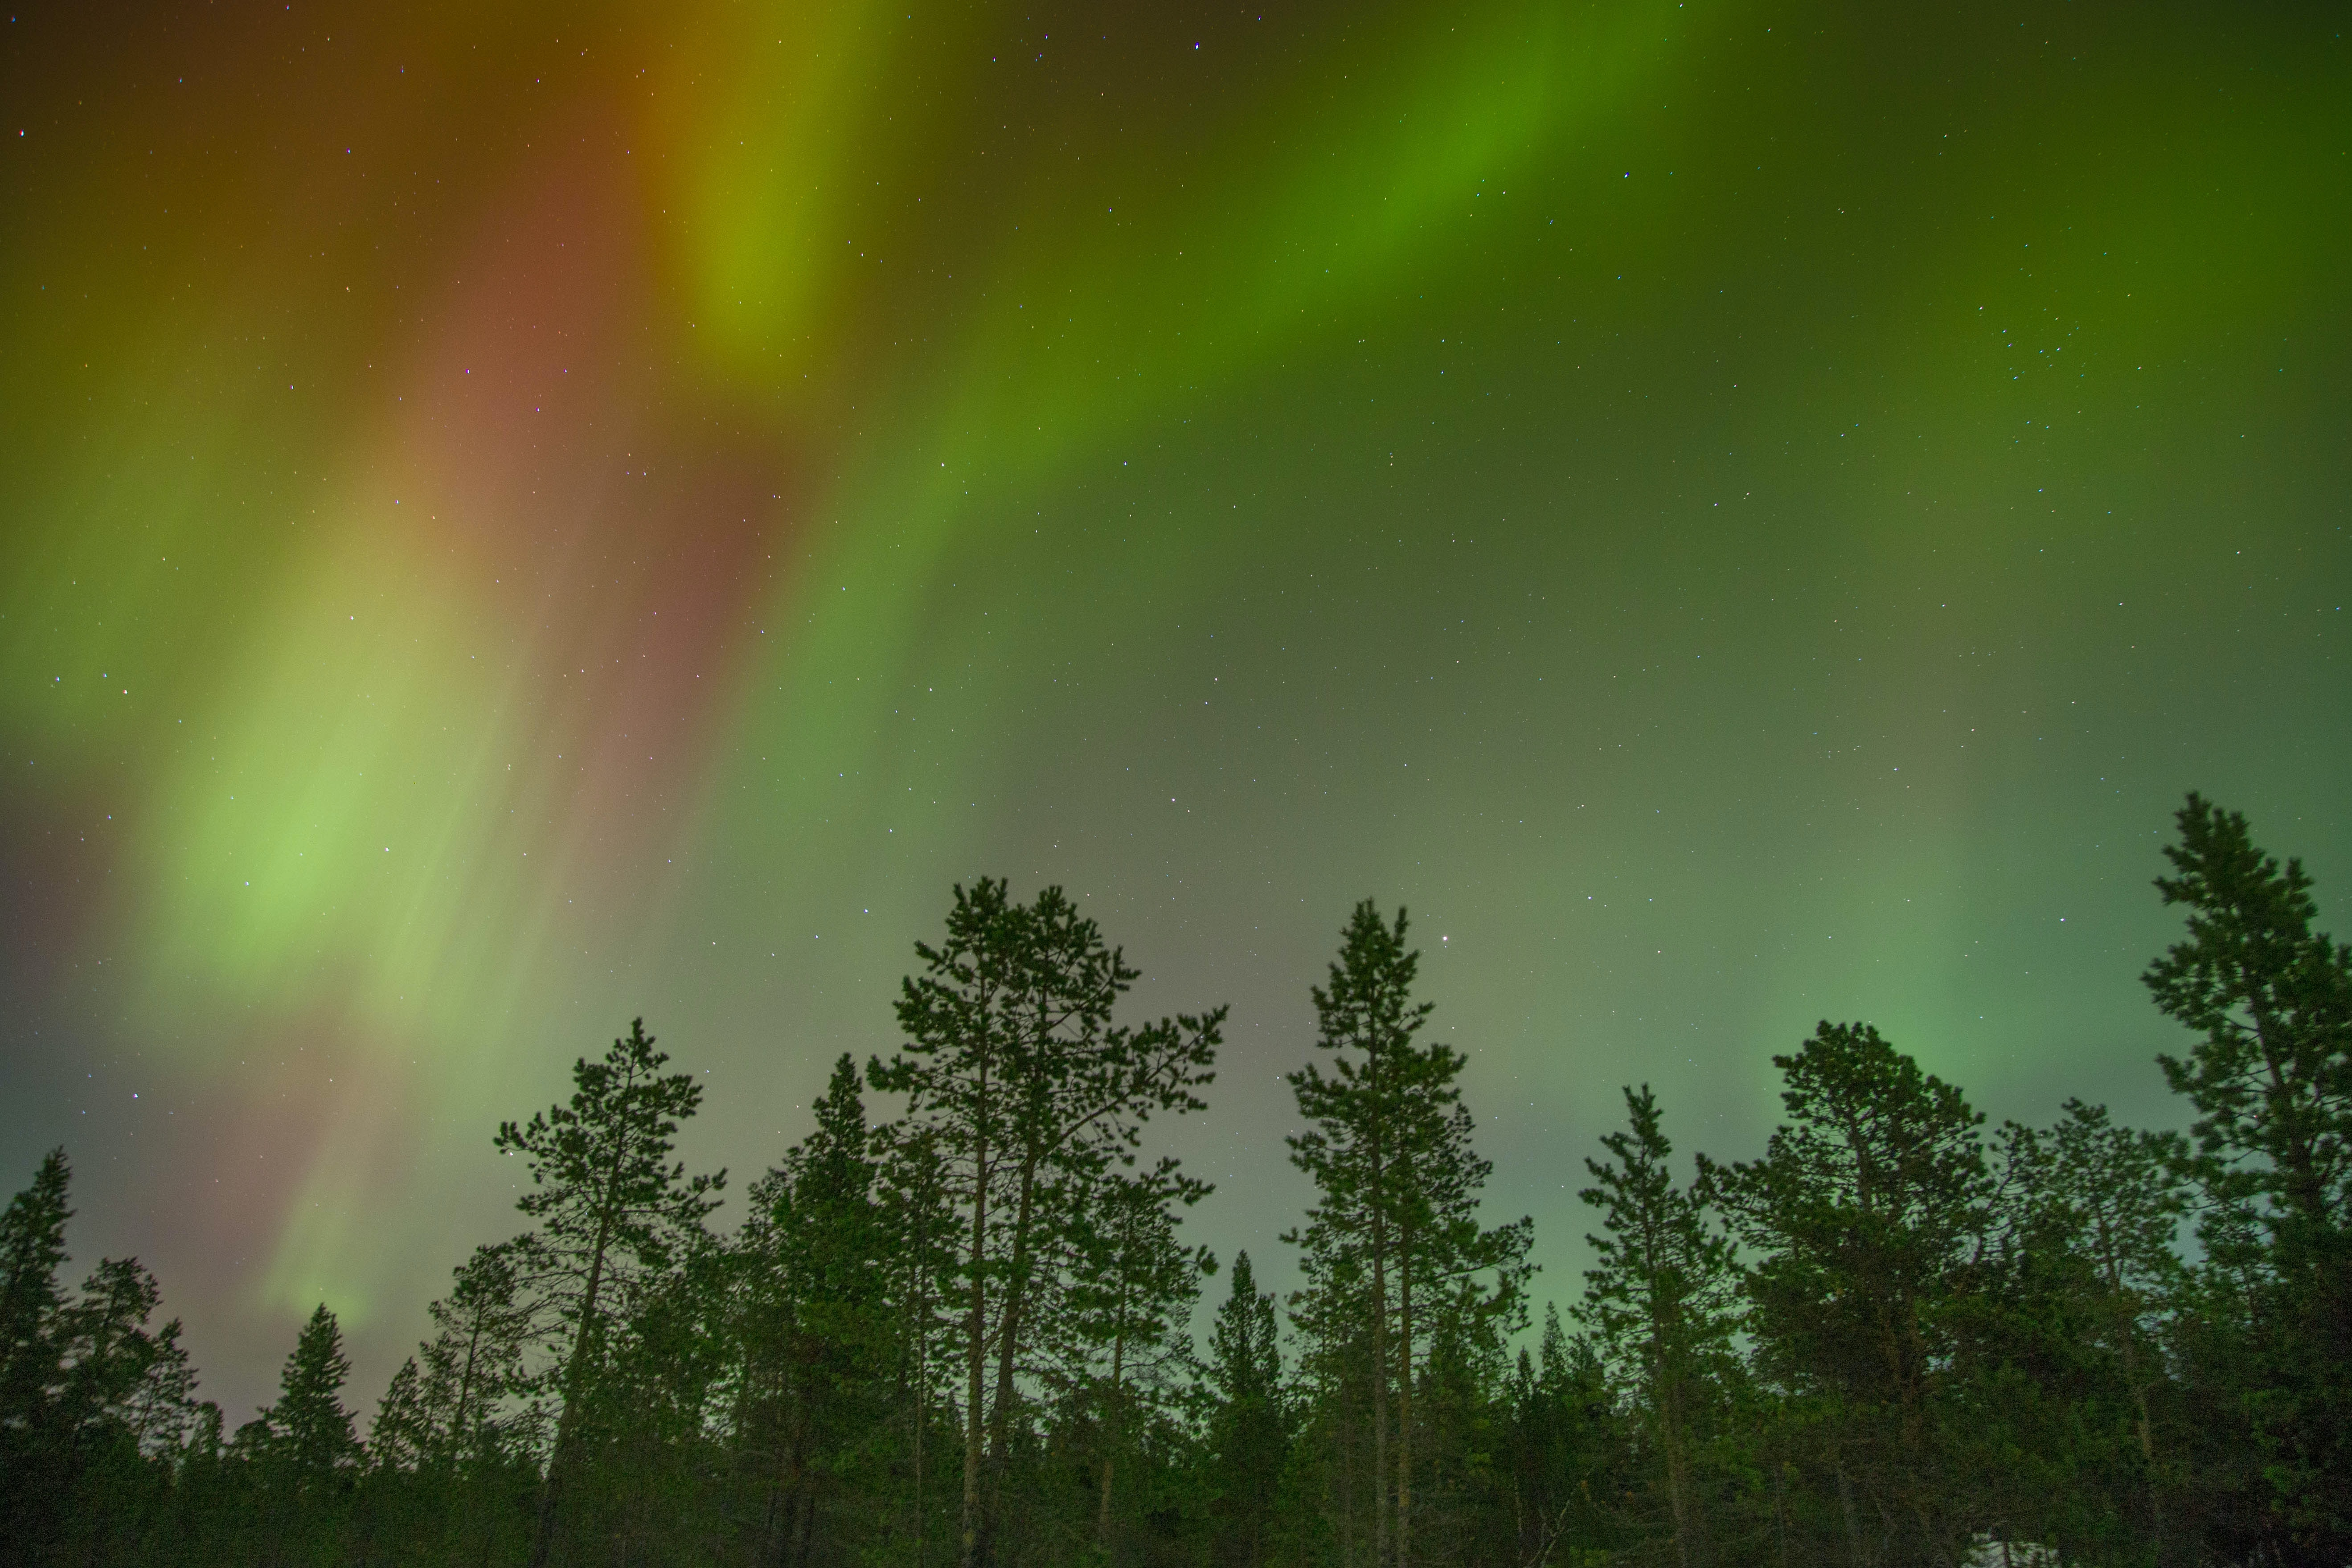 Green and red aurora borealis on a starry sky over a forest